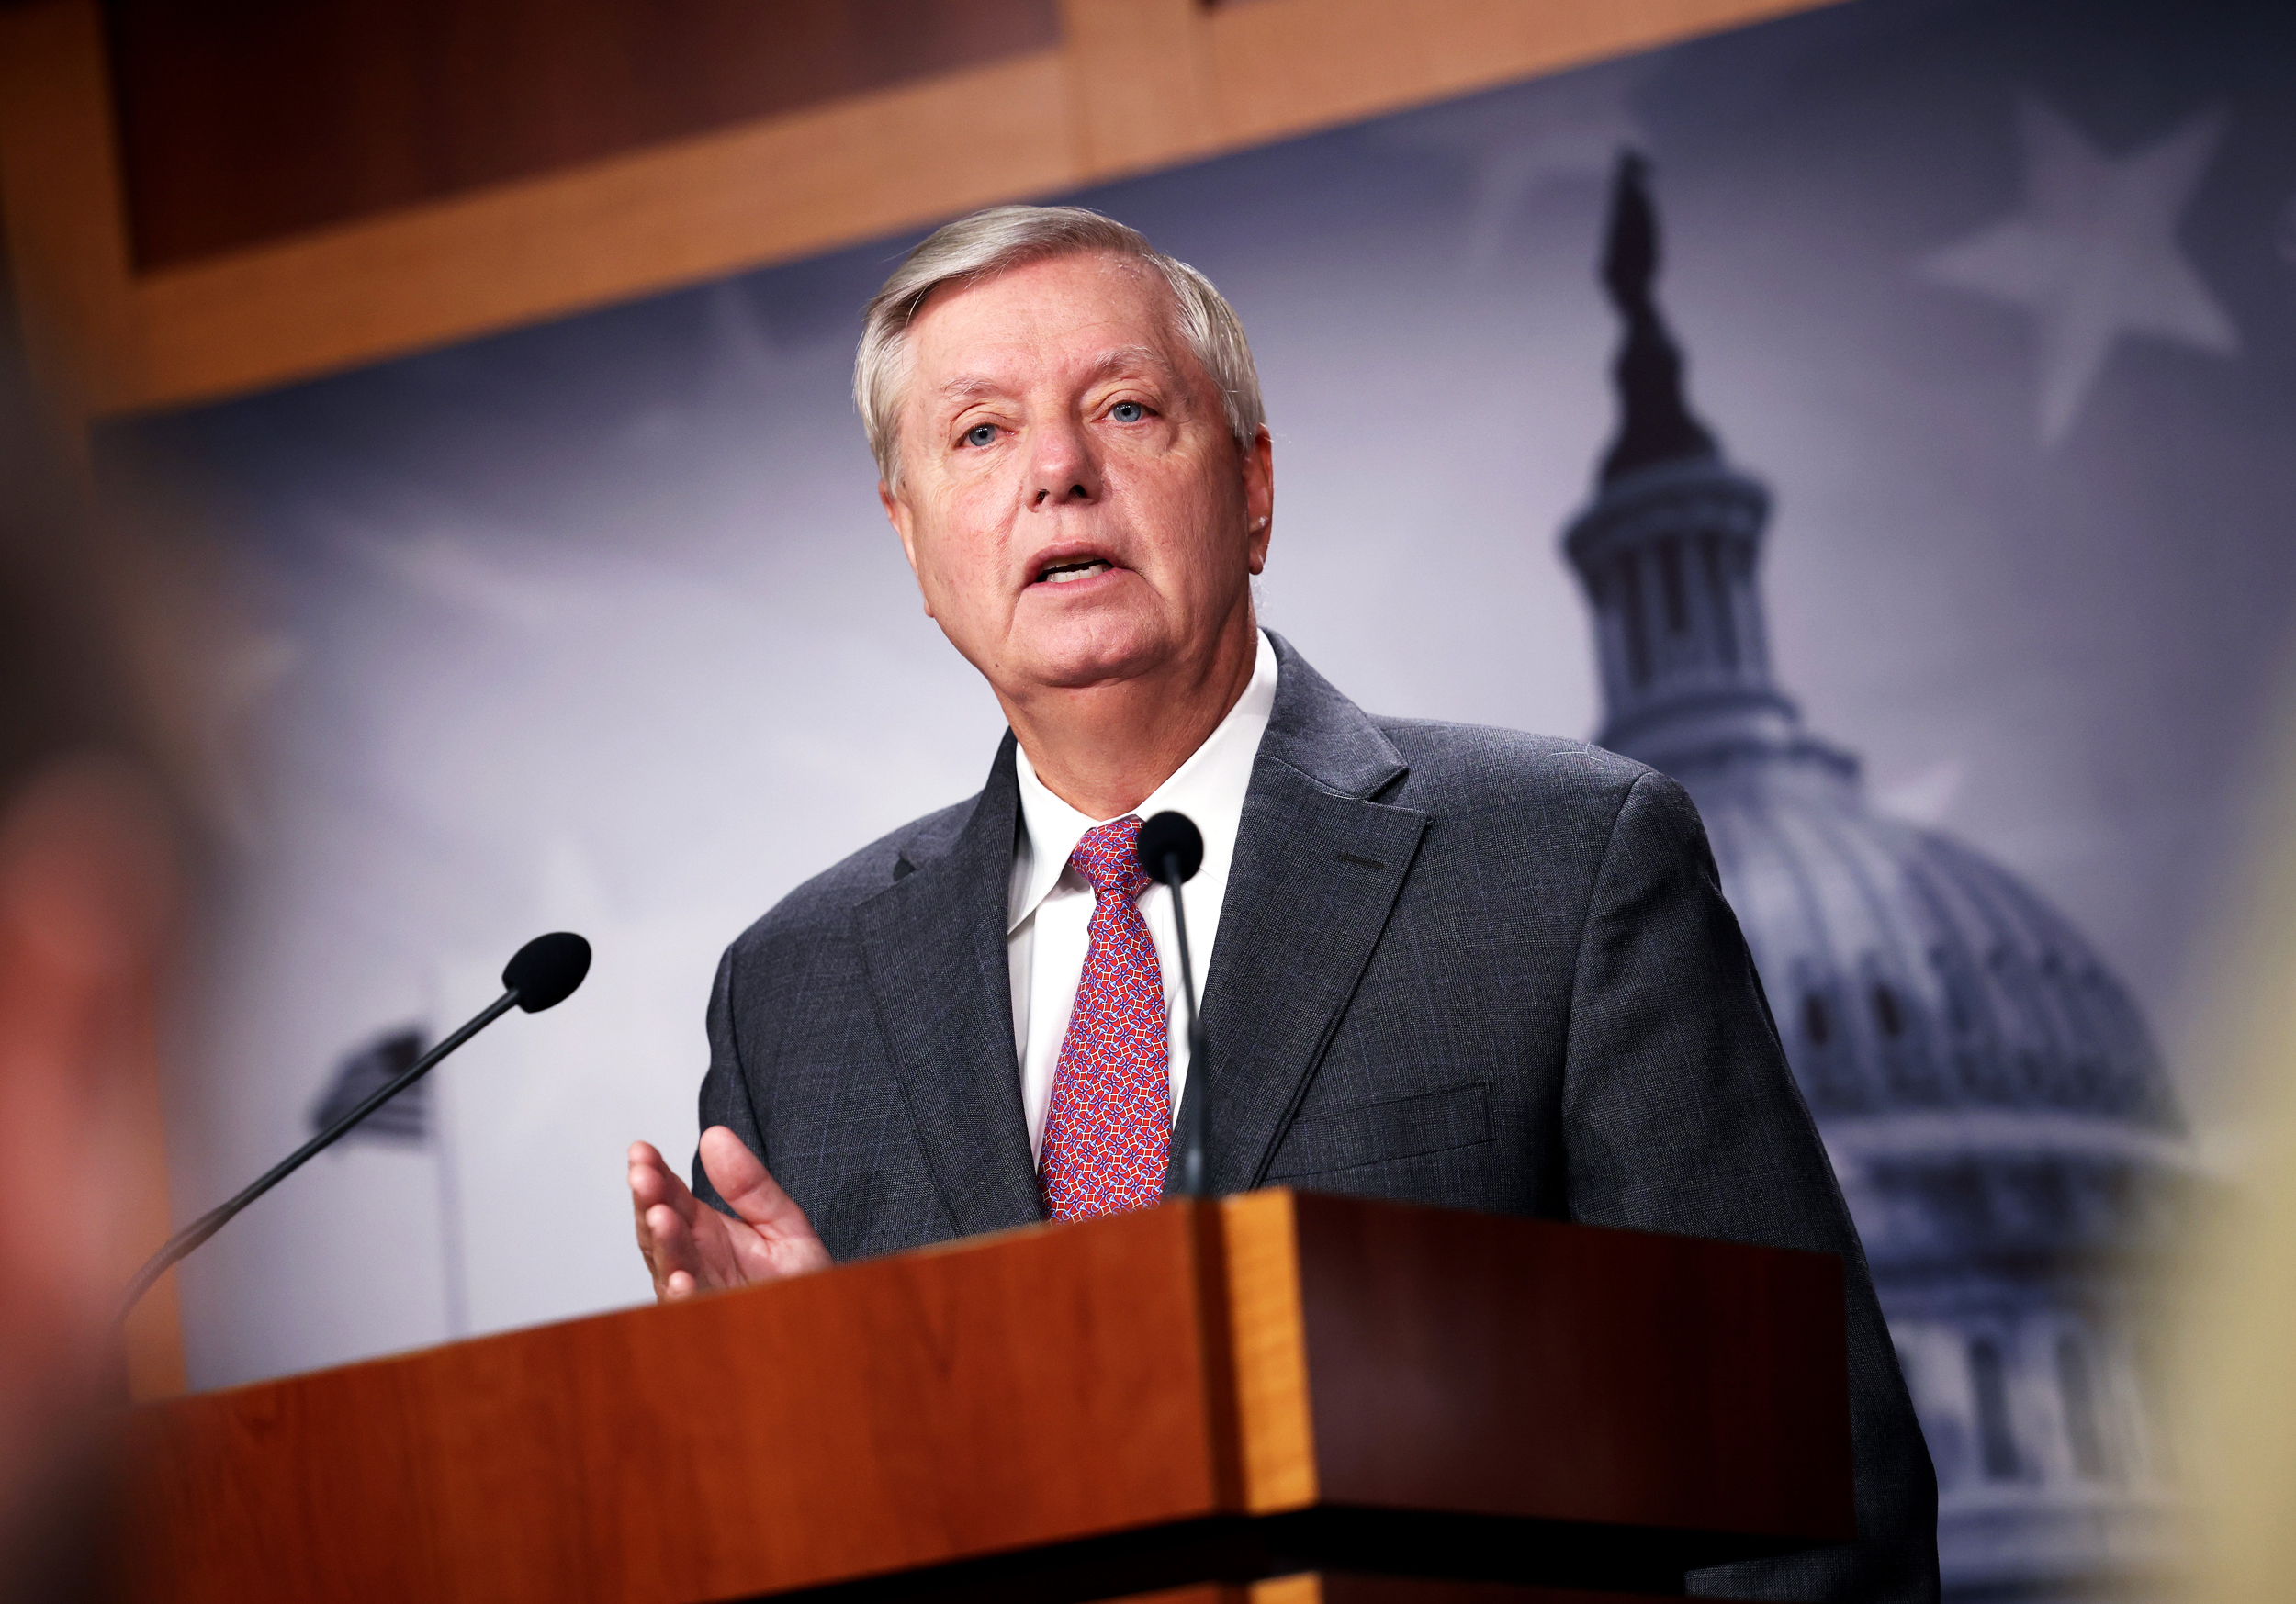 'Very glad I was vaccinated': GOP Sen. Lindsey Graham tests positive for Covid